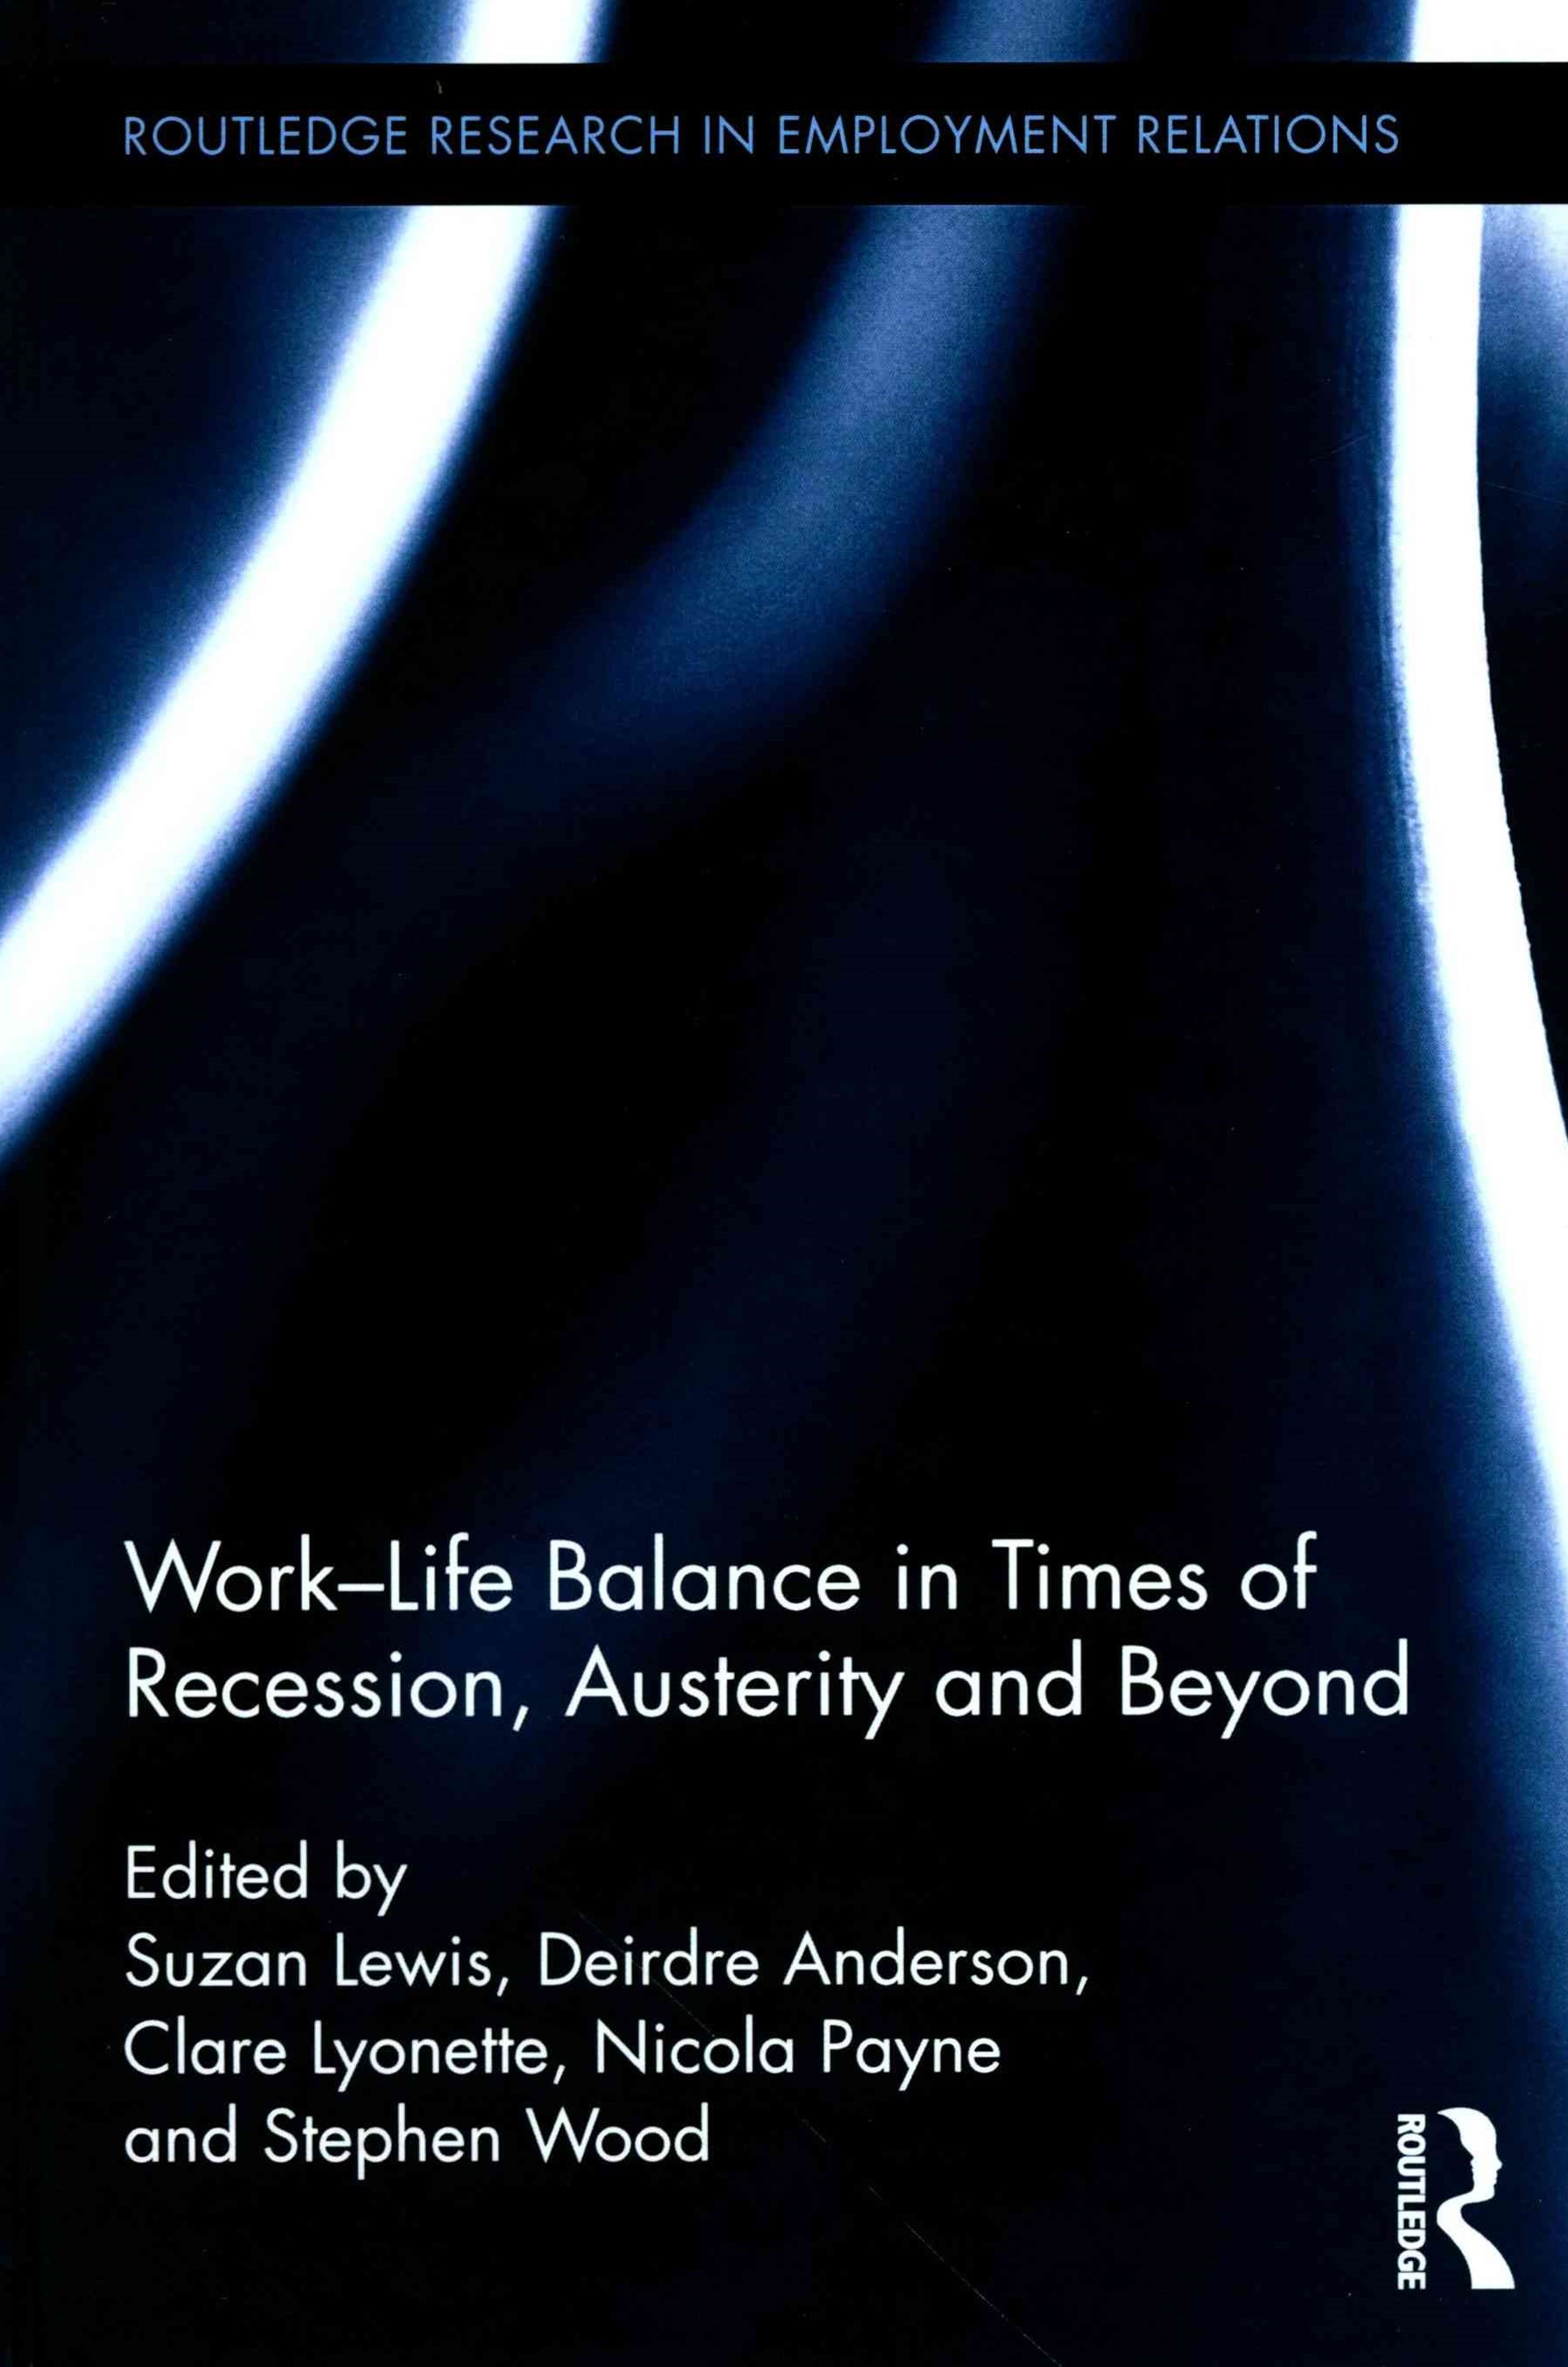 Work-Life Balance in Times of Austerity and Beyond